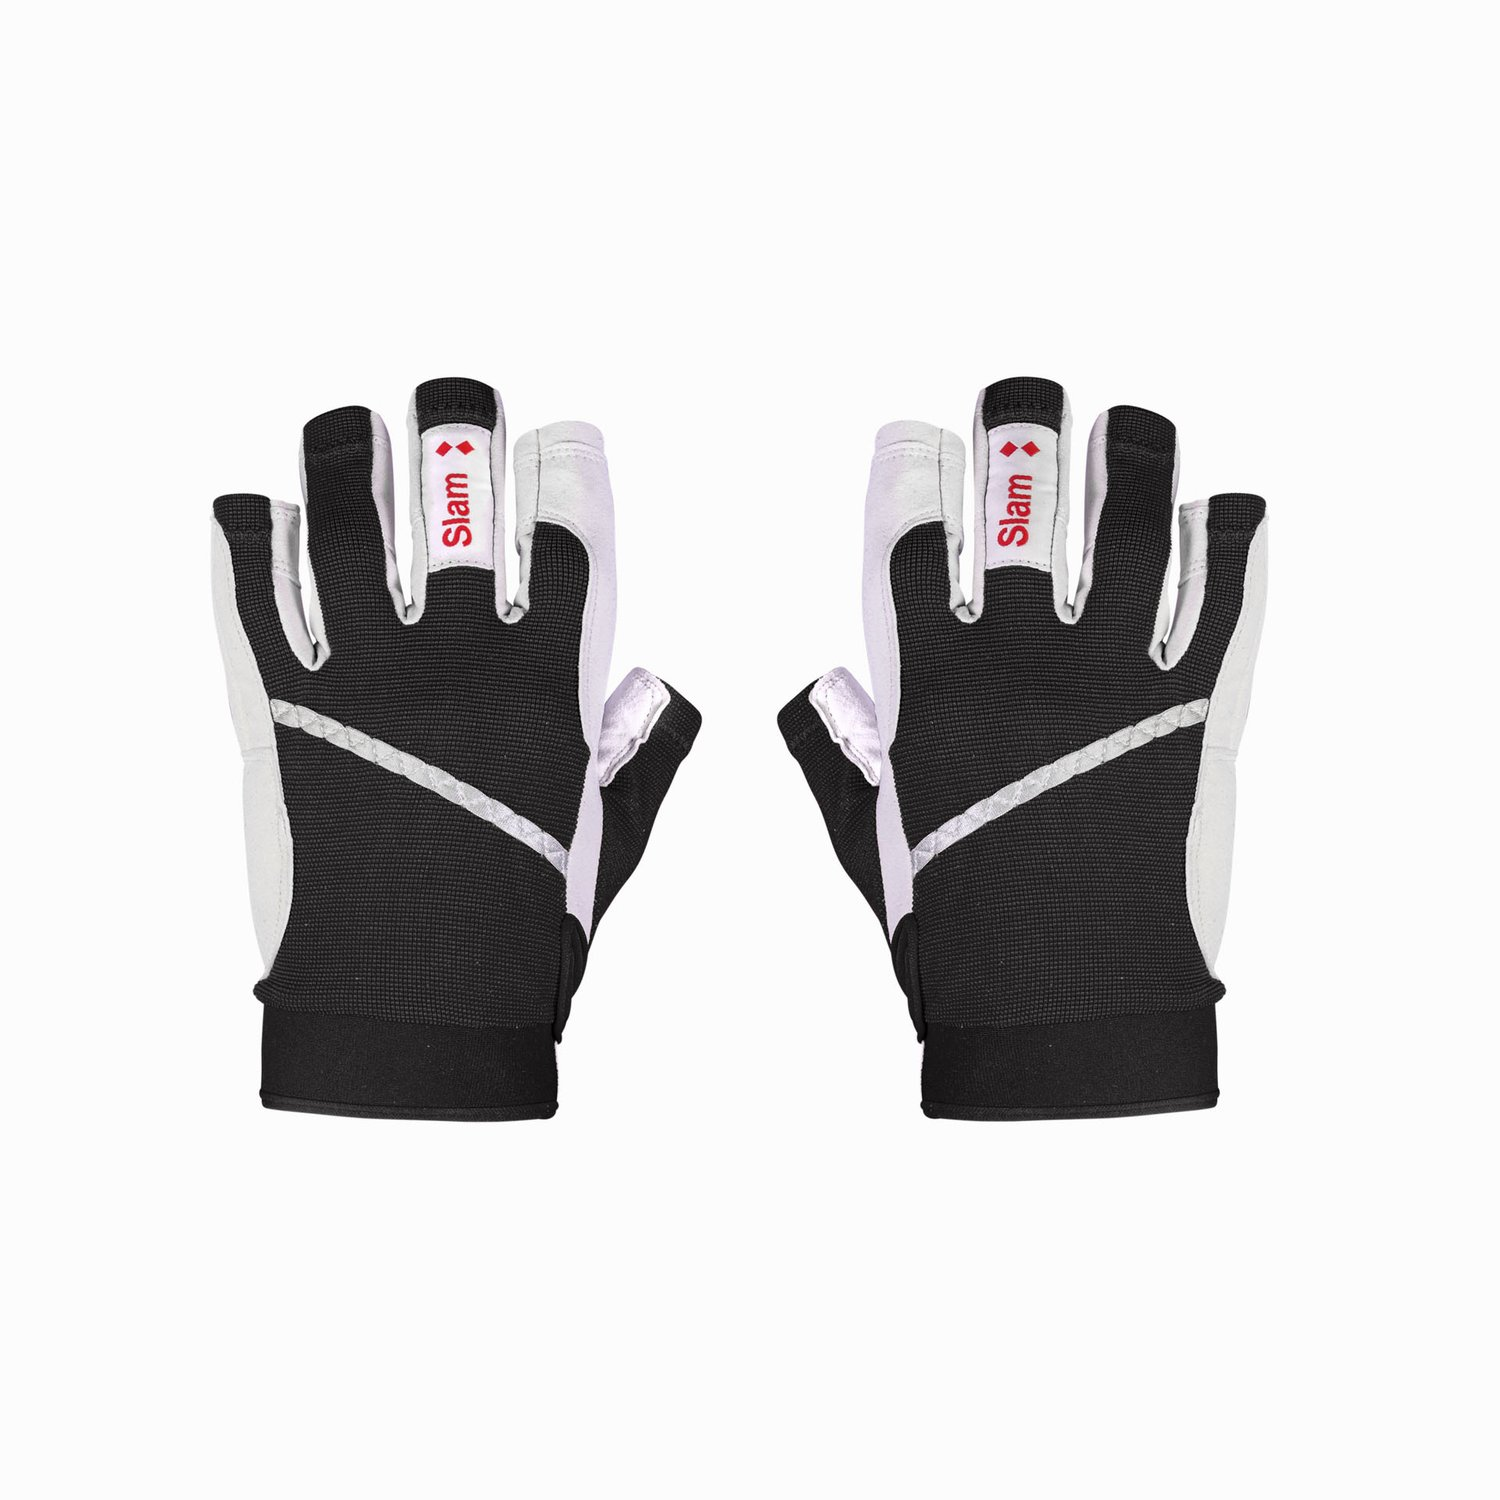 3/4 length finger gloves - Black